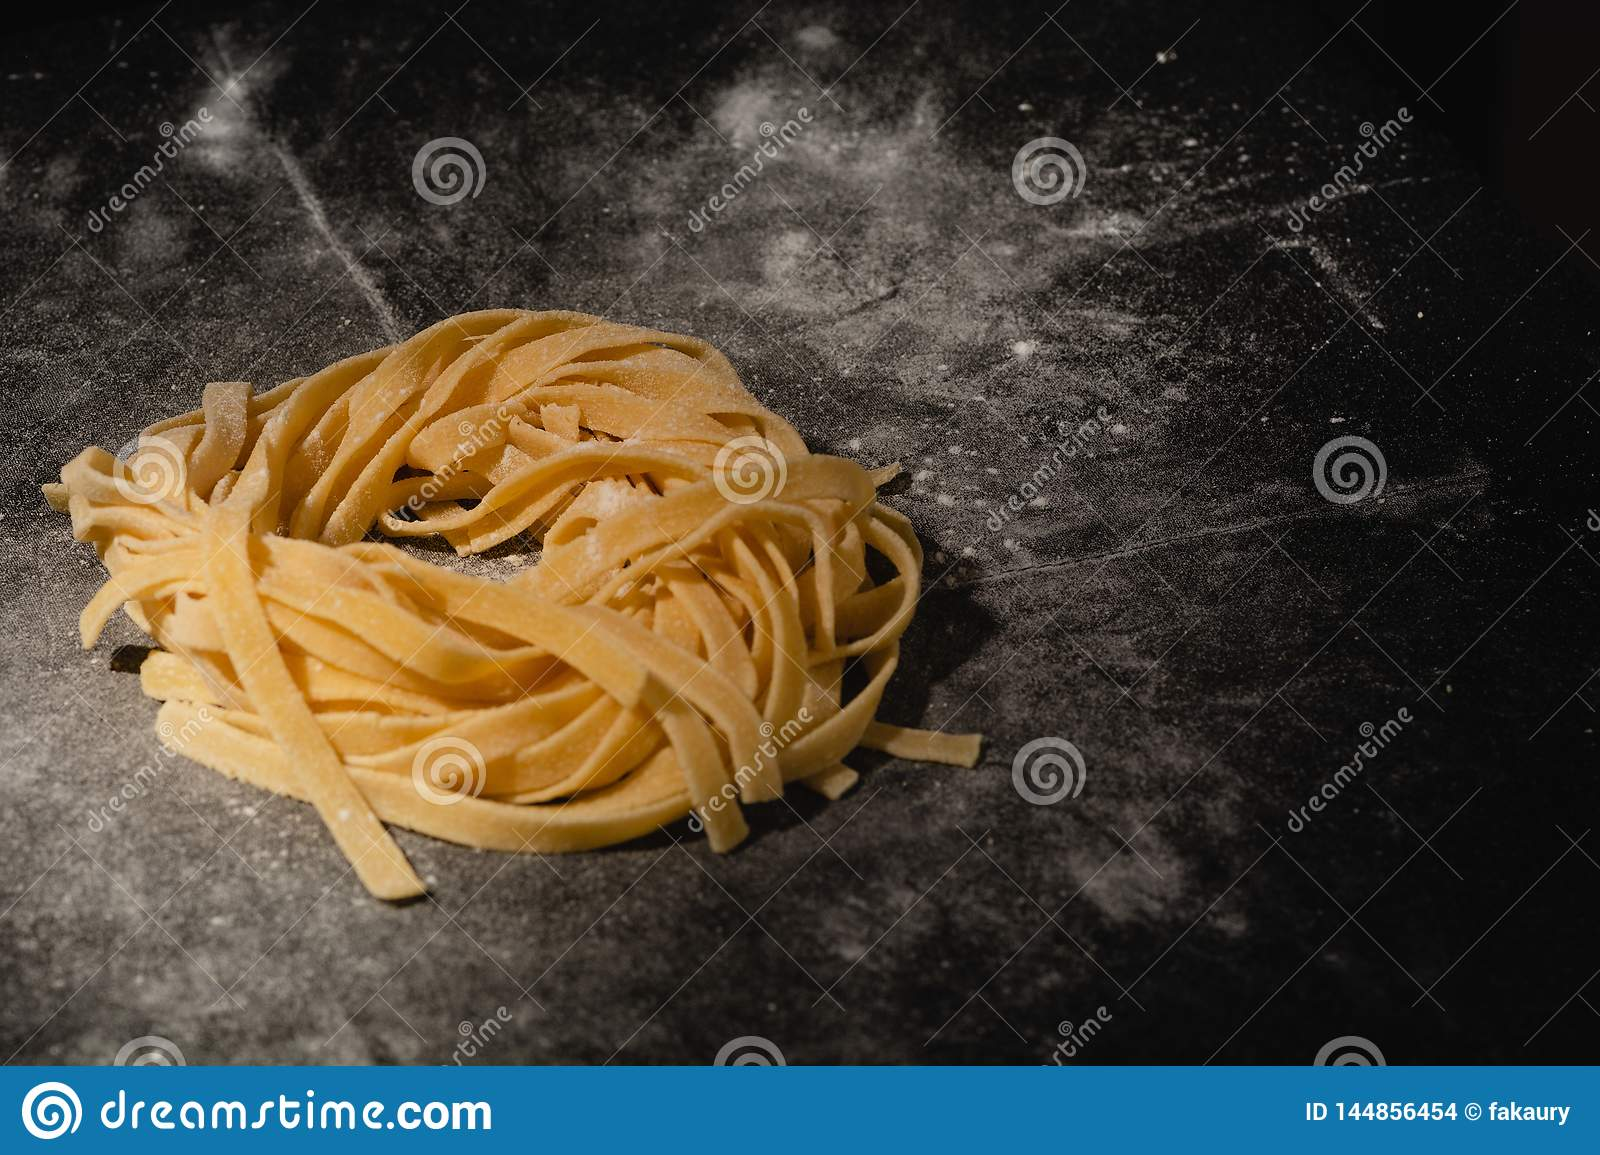 Isolated raw pasta on a black background with a place for text. Traditional Italian pasta, noodles, tagliatelle. Top view. Copy